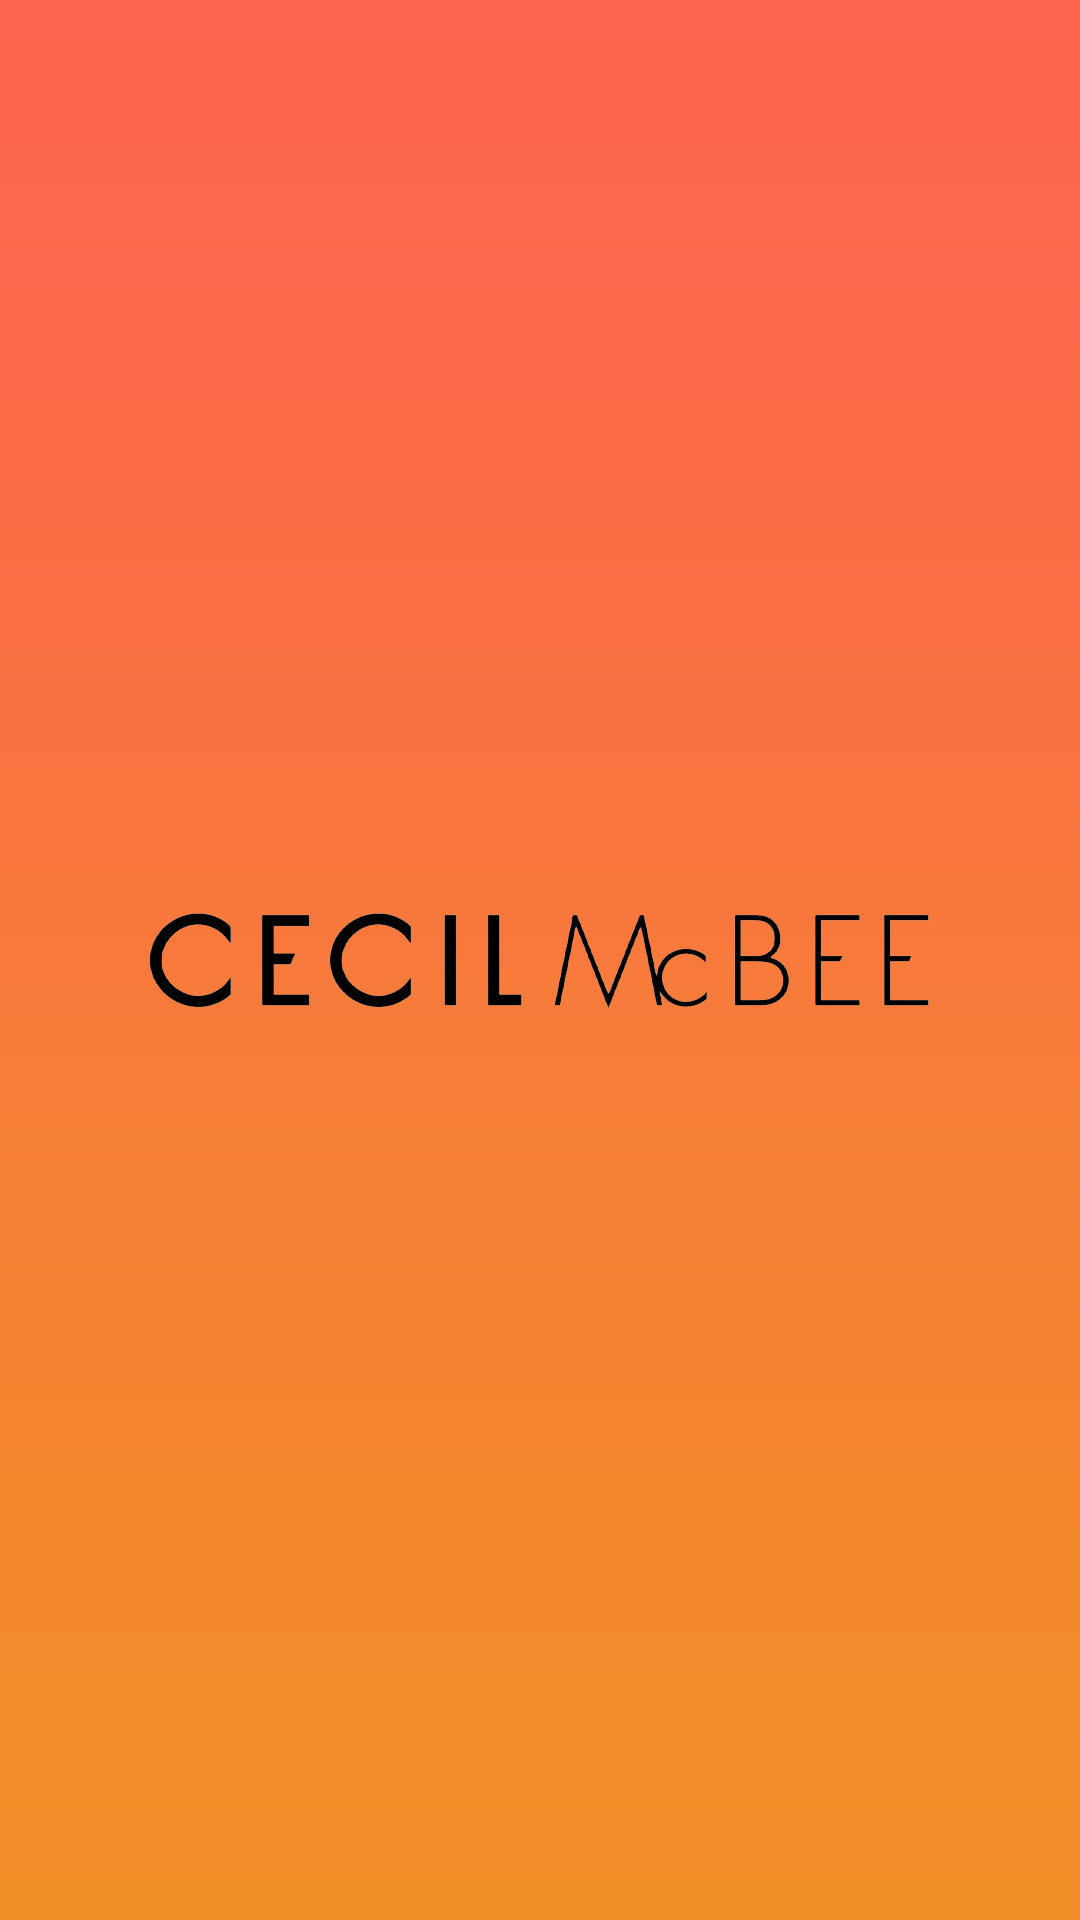 cecil00007 - セシルマクビー[CECIL McBEE]の高画質スマホ壁紙23枚 [iPhone&Androidに対応]